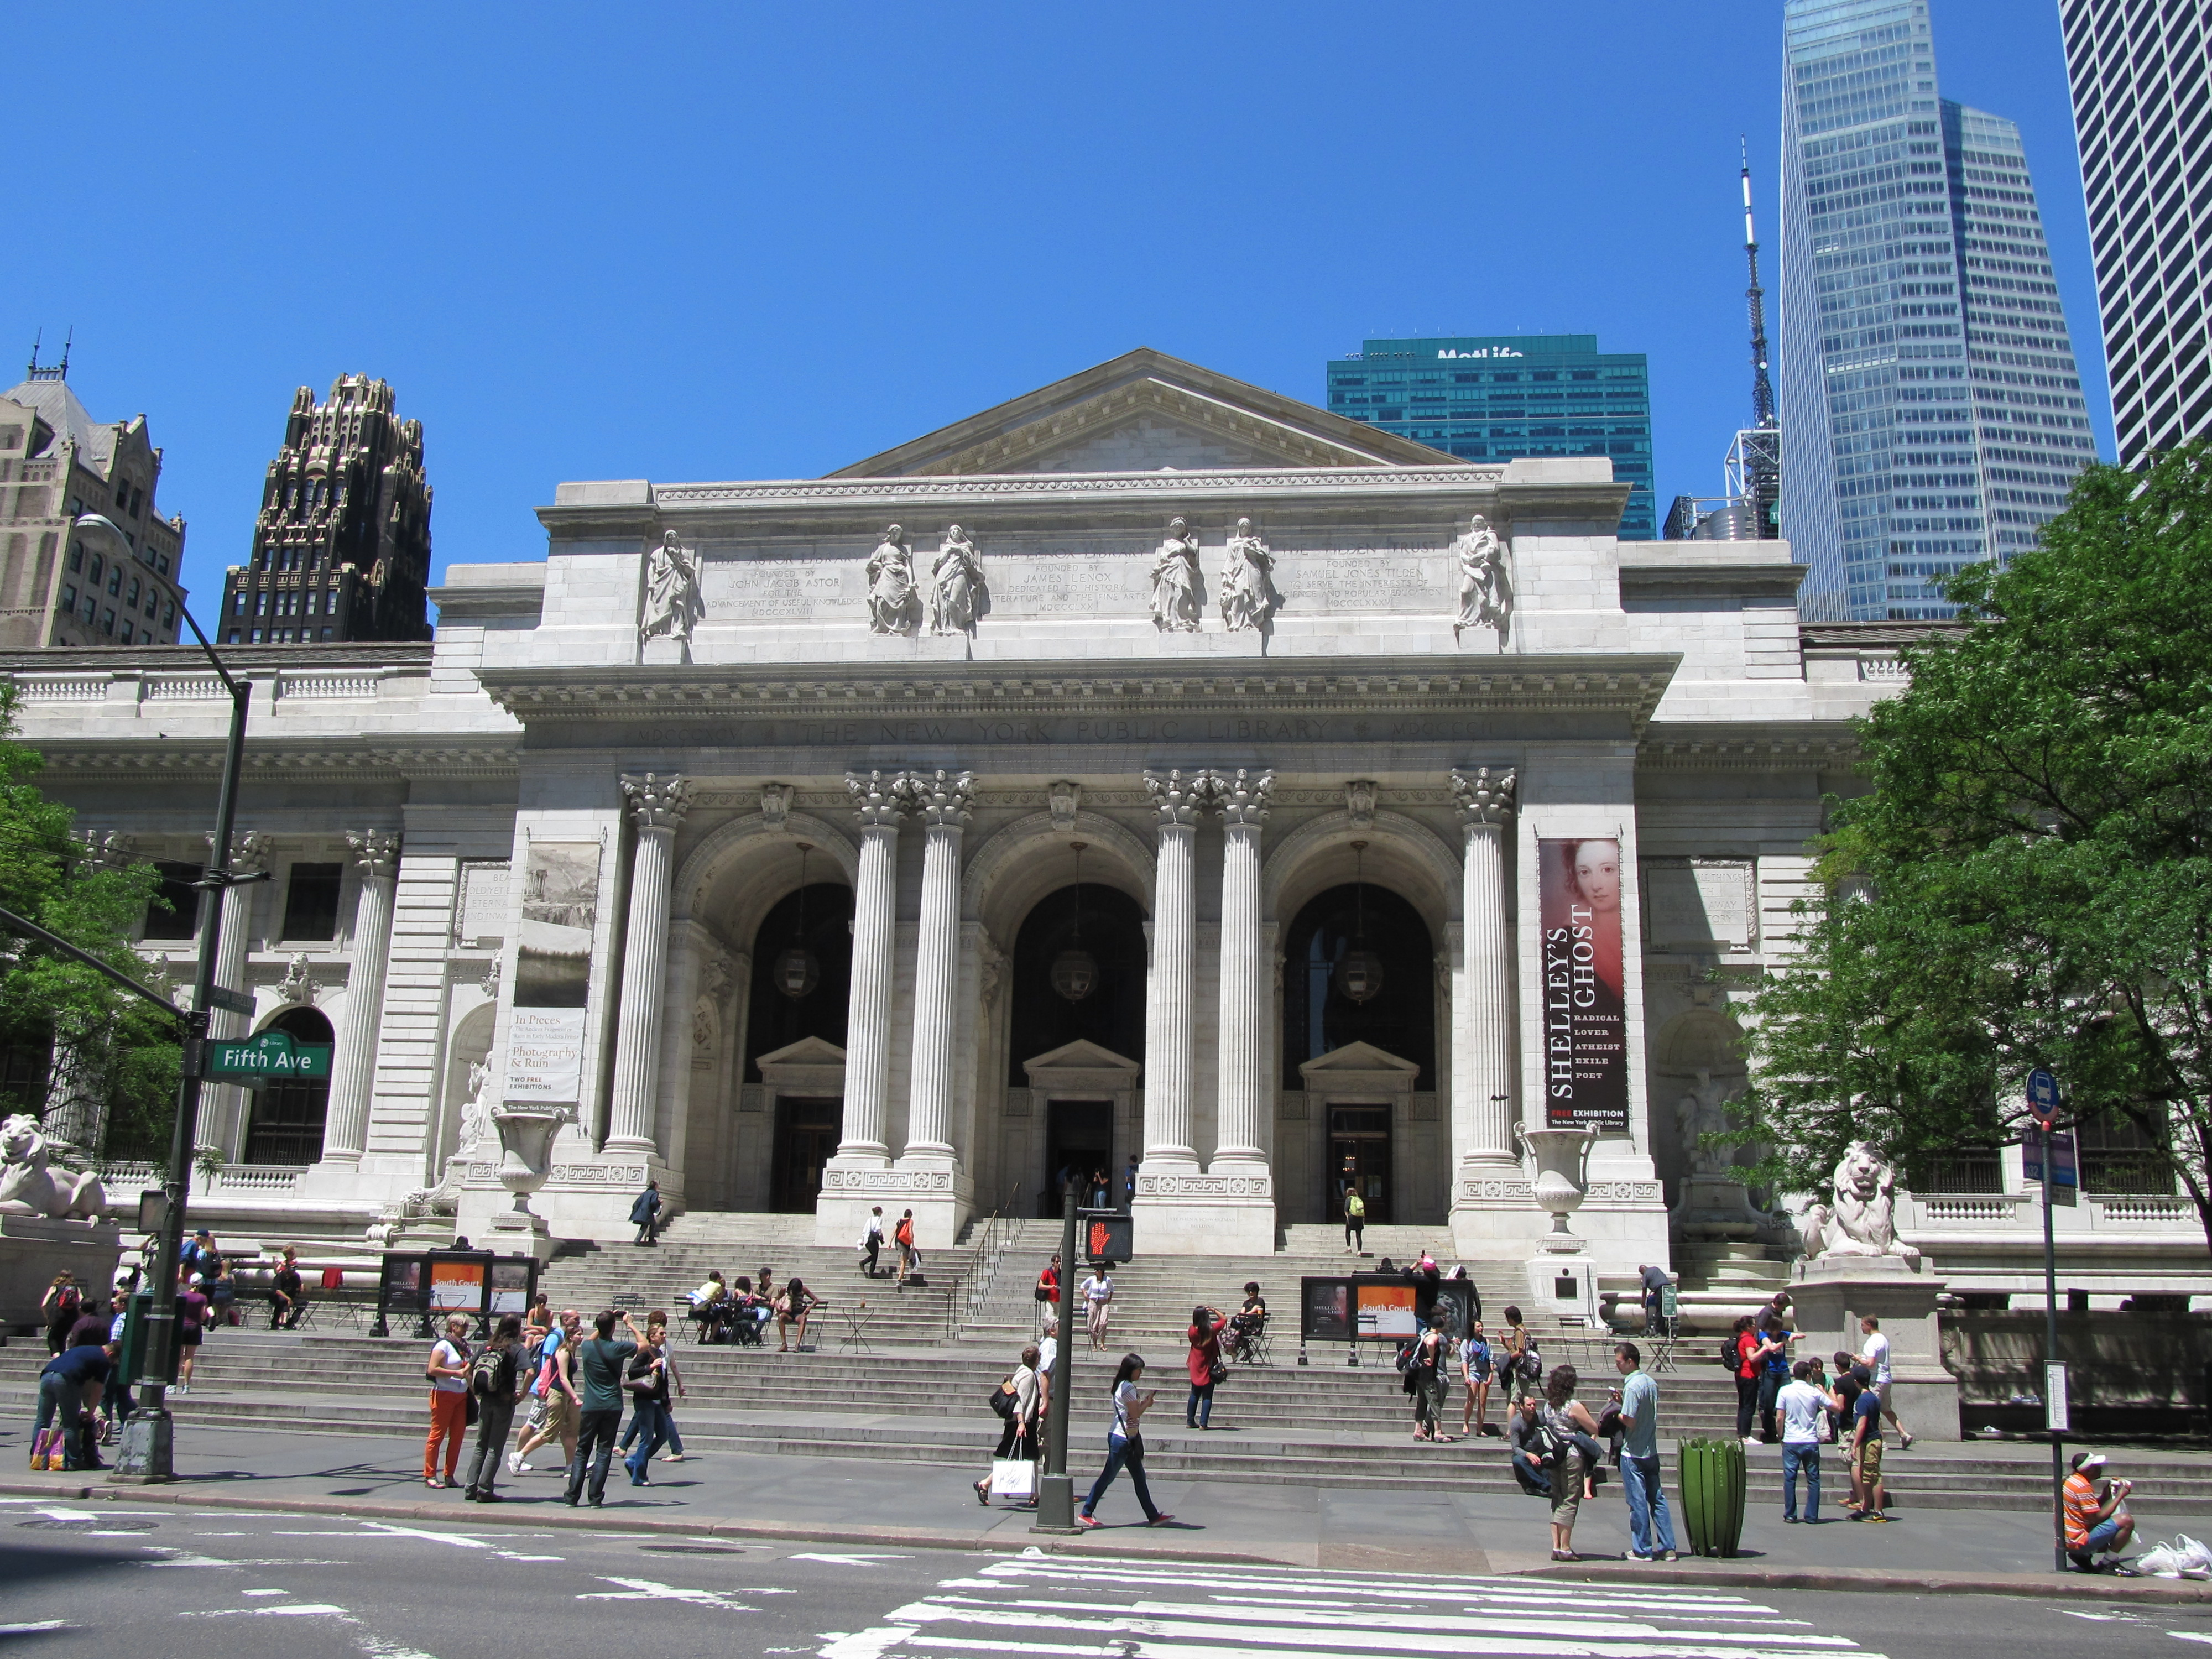 Entrance of the New-York Public Library